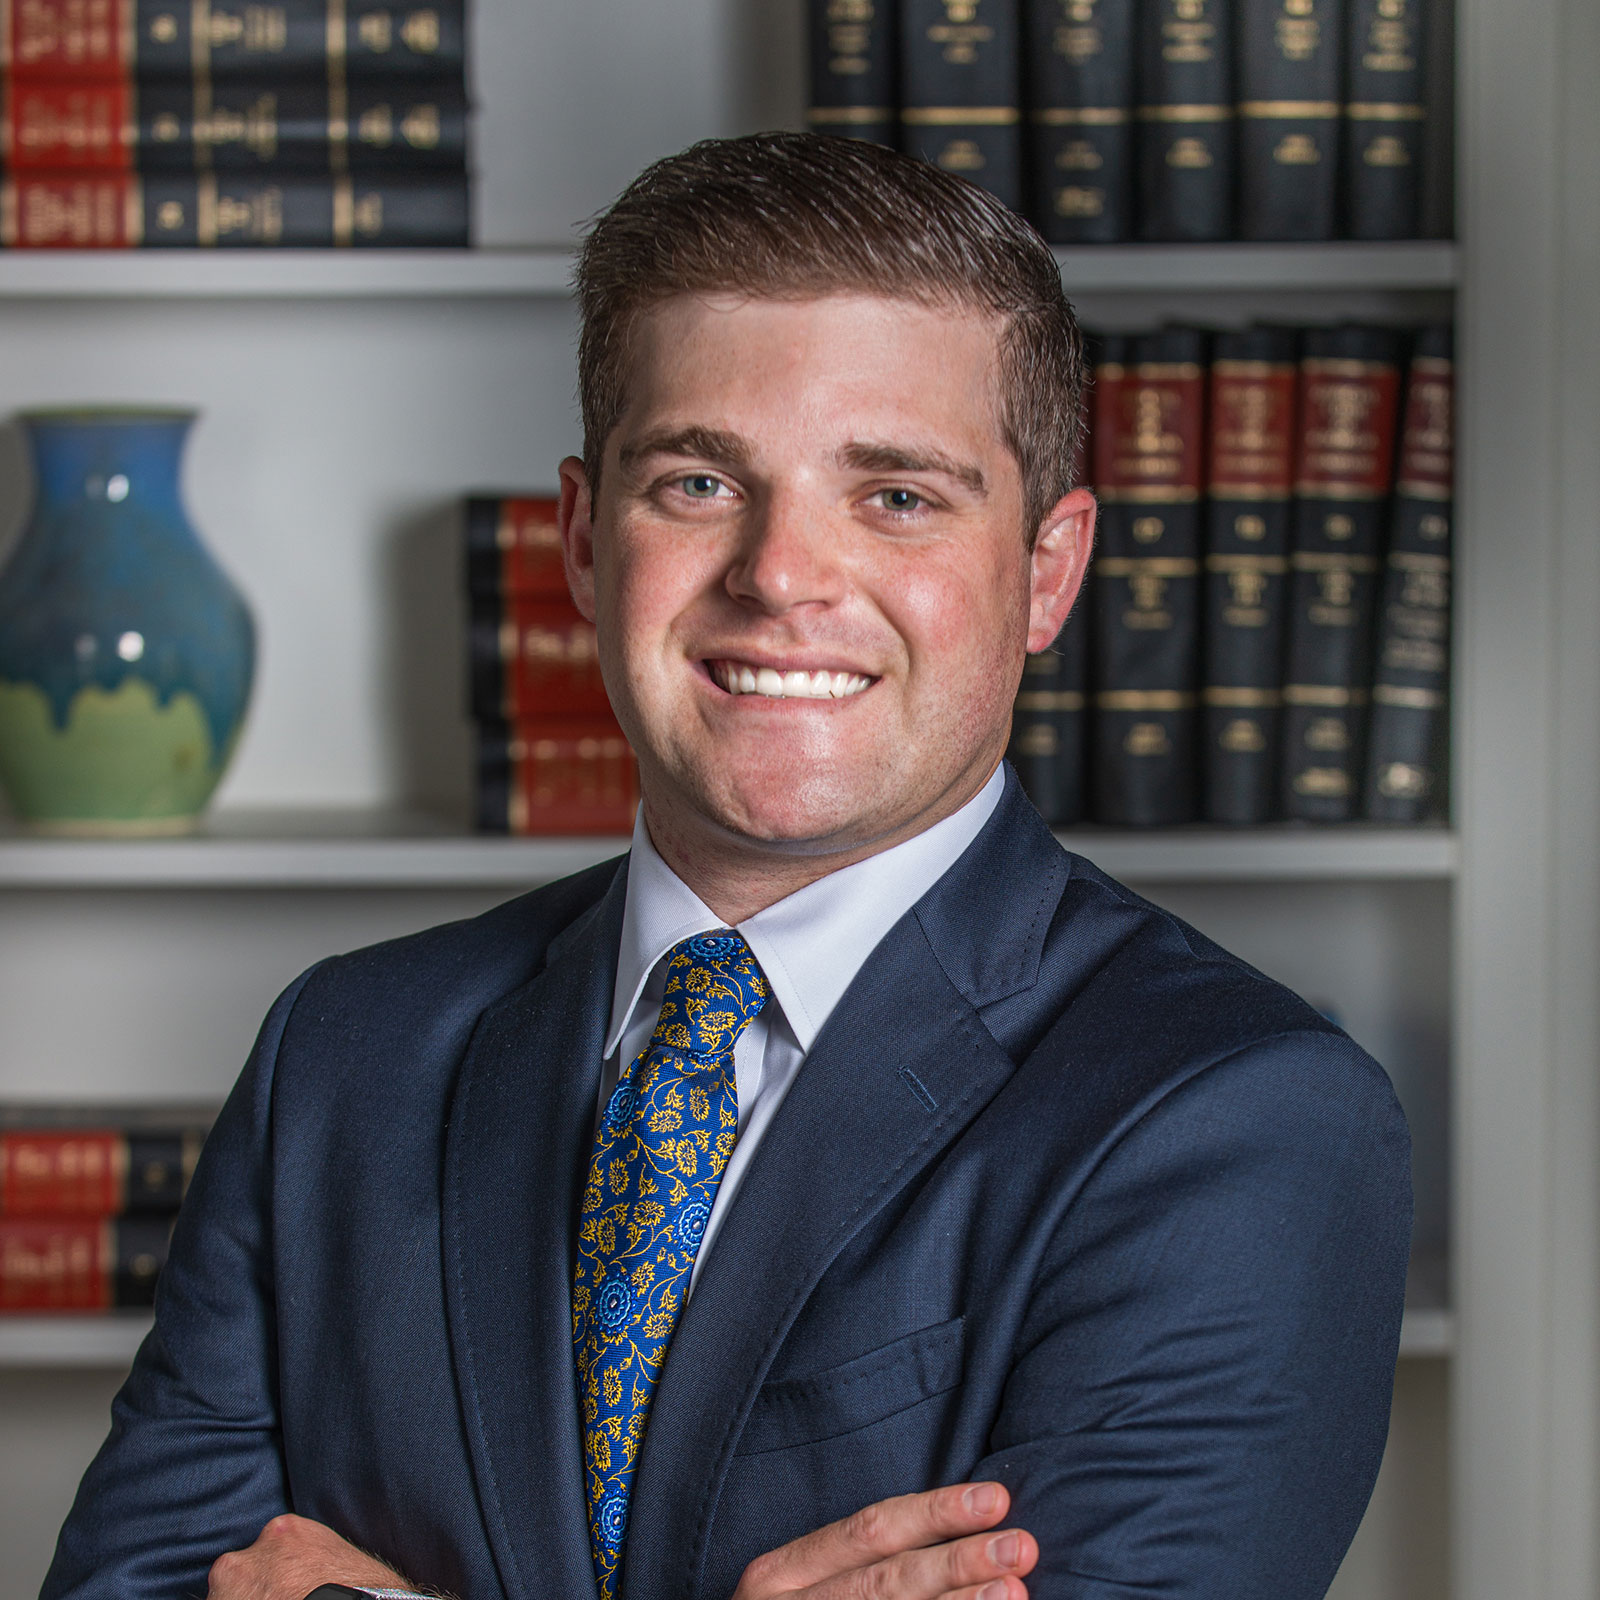 Headshot of Alec Sard, an Atlanta based provisional attorney with a primary focus on land use and development and general real estate law.